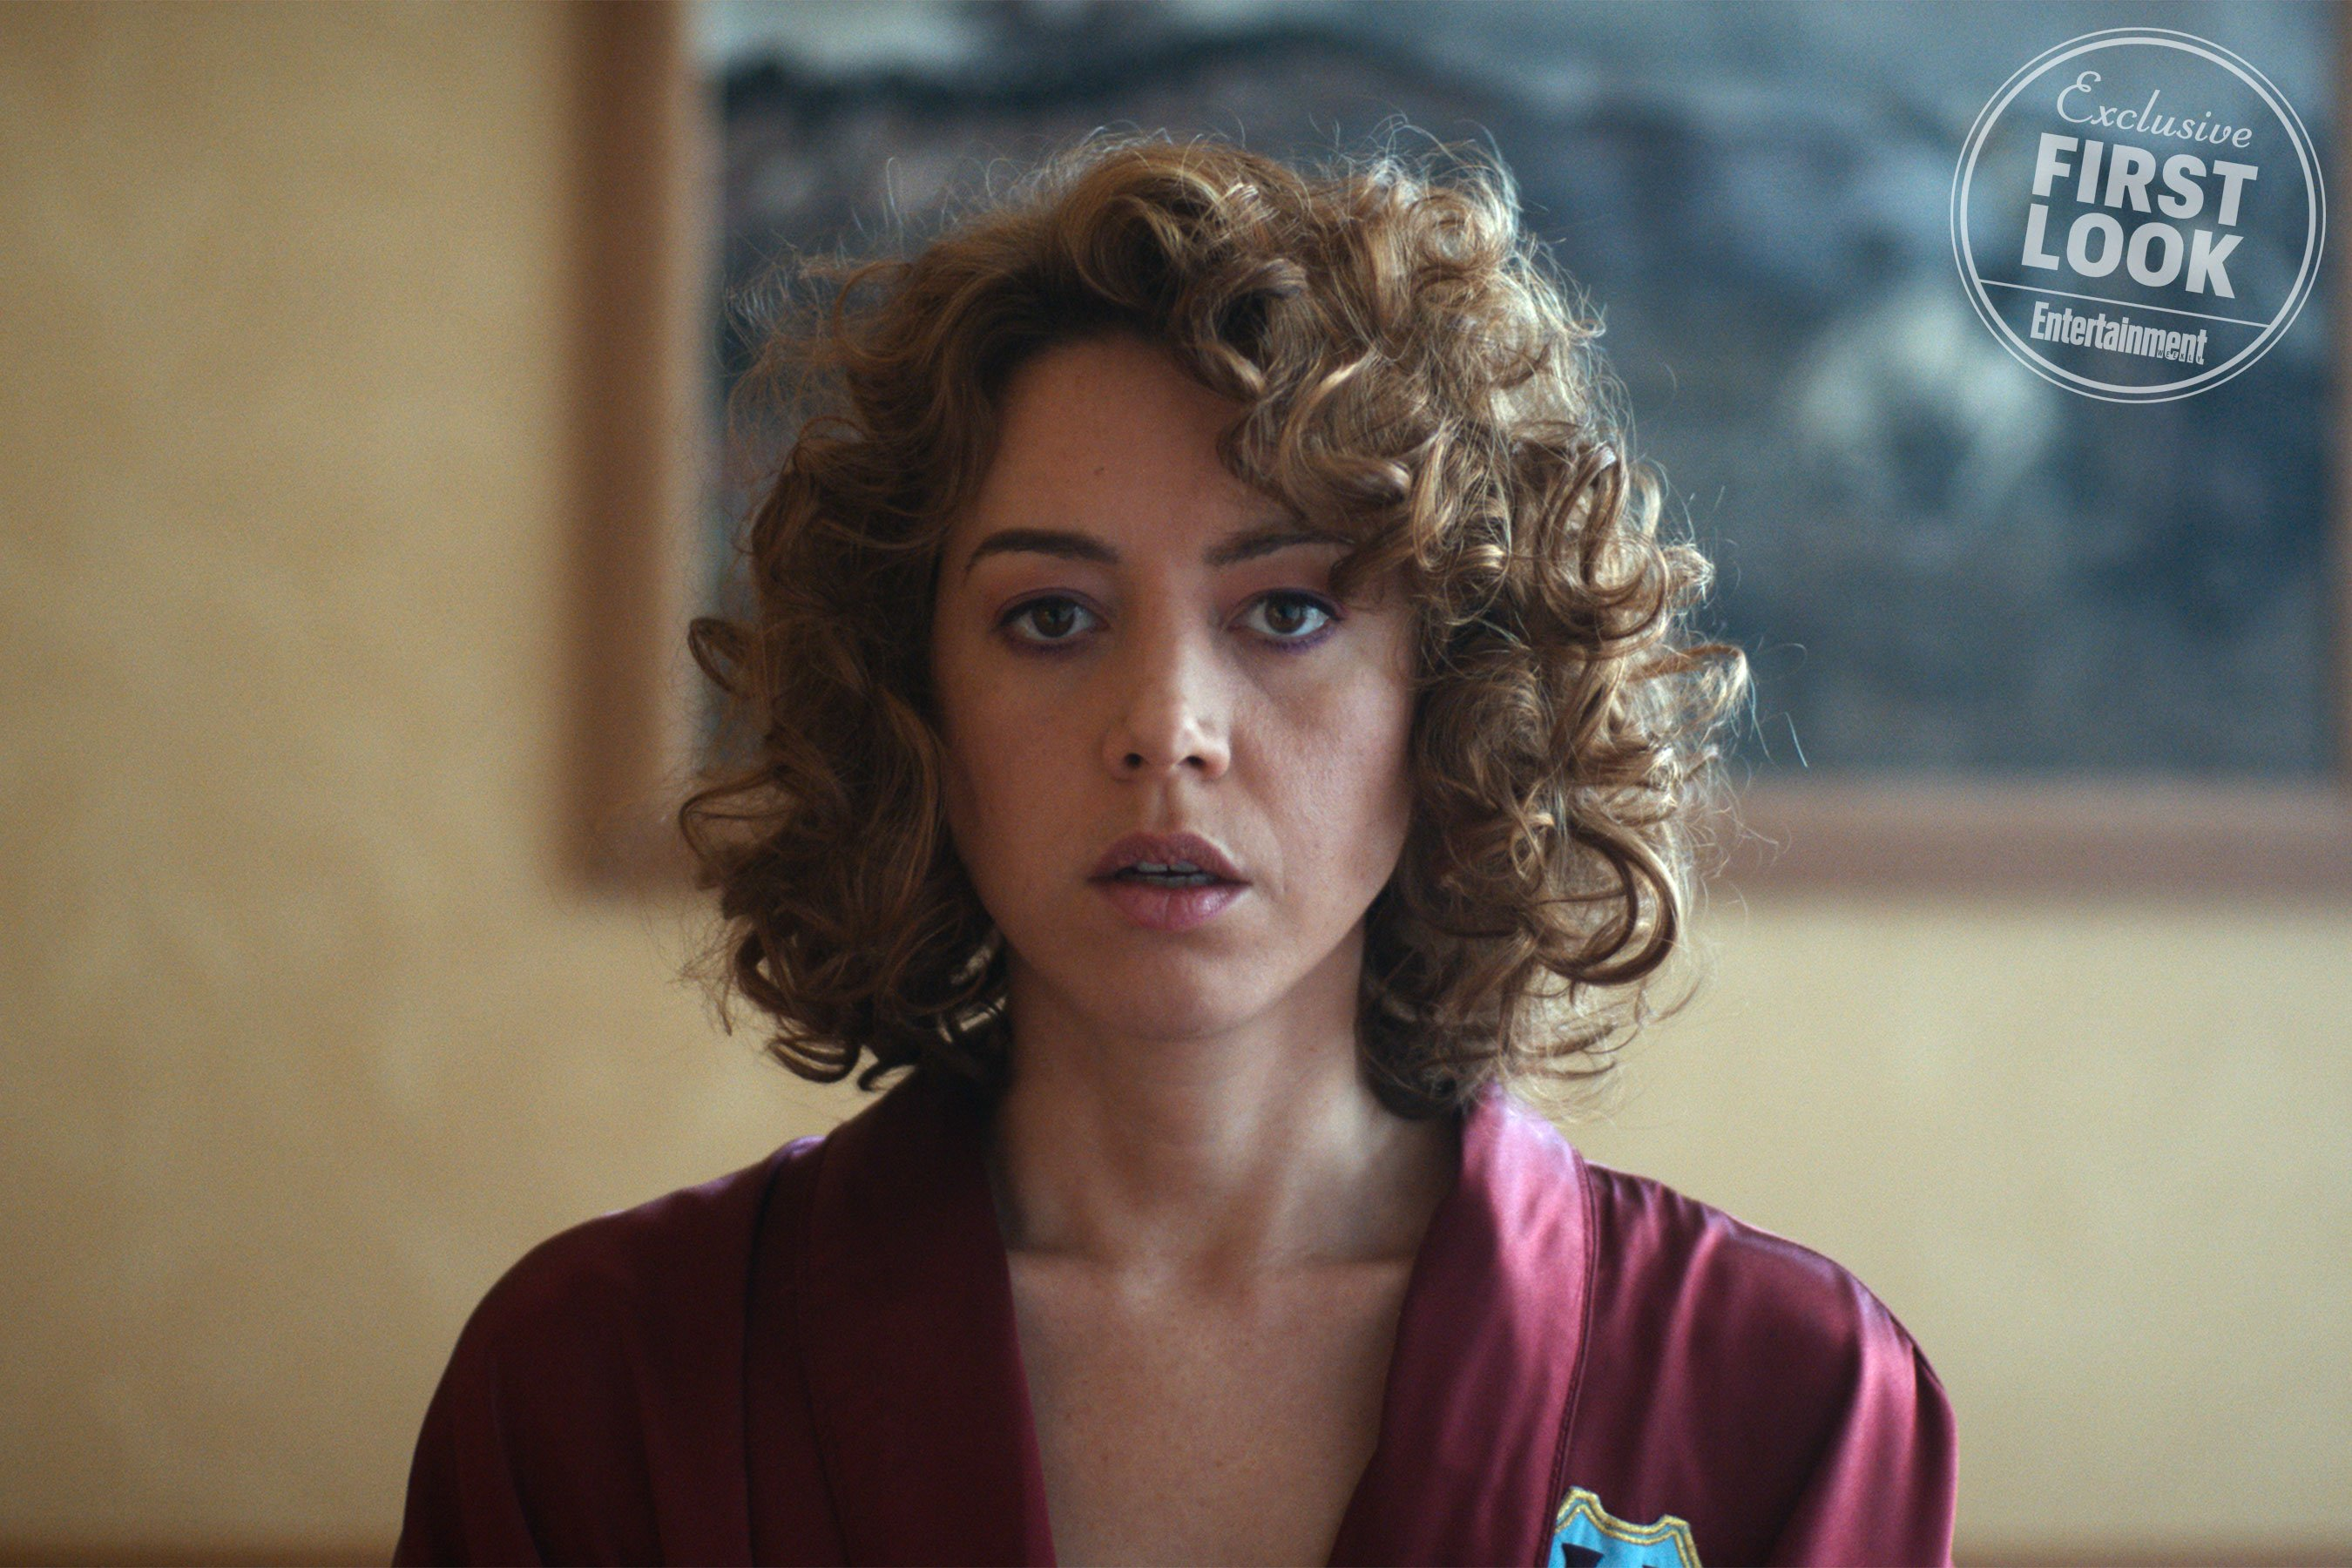 First look: Aubrey Plaza's Sundance comedy An Evening with Beverly Luff Linn